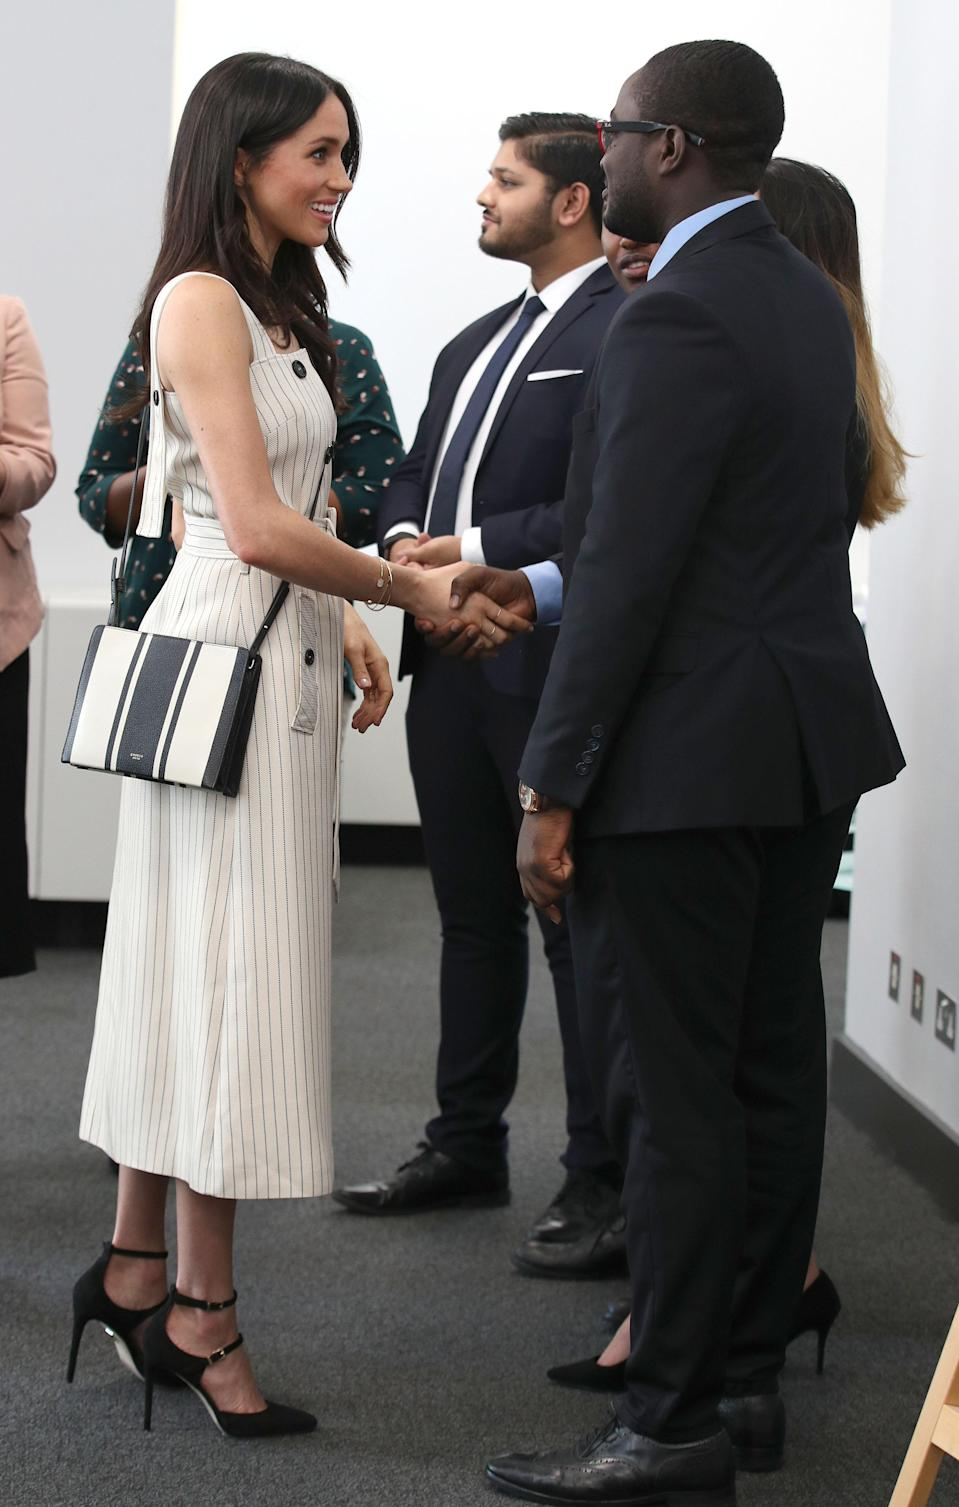 "<p>Not all of Meghan's subsersive fashion moments are met with admiration.<br>Arriving at the Commonwealth Youth Forum in April 2018 wearing an strappy Altuzarra pinstripe midi dress, the now-Duchess got a quick lesson in the furore of hard-core royalists.<br>The seemingly inoffensive strappy dress – which bared her bare shoulders – was <a rel=""nofollow"" href=""https://uk.style.yahoo.com/meghan-markle-faces-huge-backlash-wearing-strapless-dress-dressing-like-celeb-084650788.html?guccounter=1"" data-ylk=""slk:met with abuse online;outcm:mb_qualified_link;_E:mb_qualified_link;ct:story;"" class=""link rapid-noclick-resp yahoo-link"">met with abuse online</a>. <br></p><p>Still, she looked incredible. <br>[Photo: Getty] </p>"